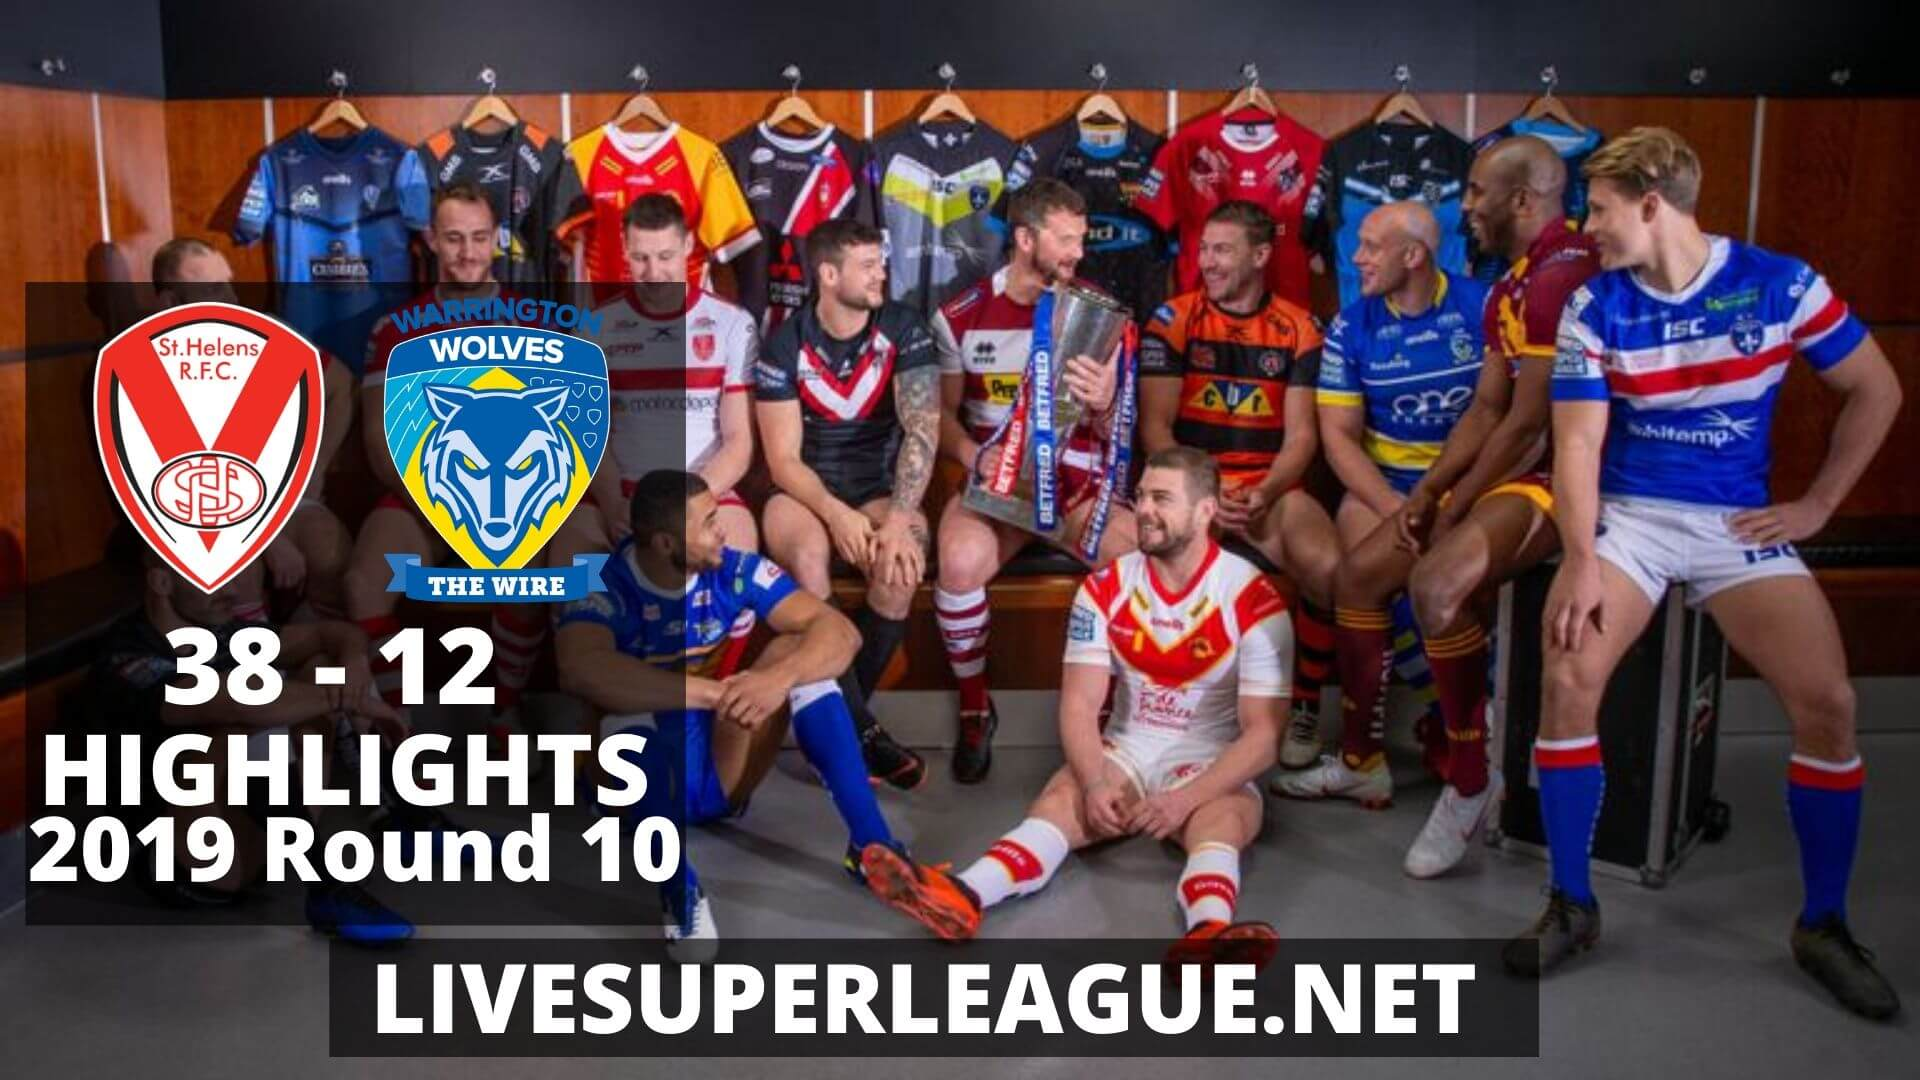 St Helens Vs Warrington Wolves Highlights 2019 Round 10